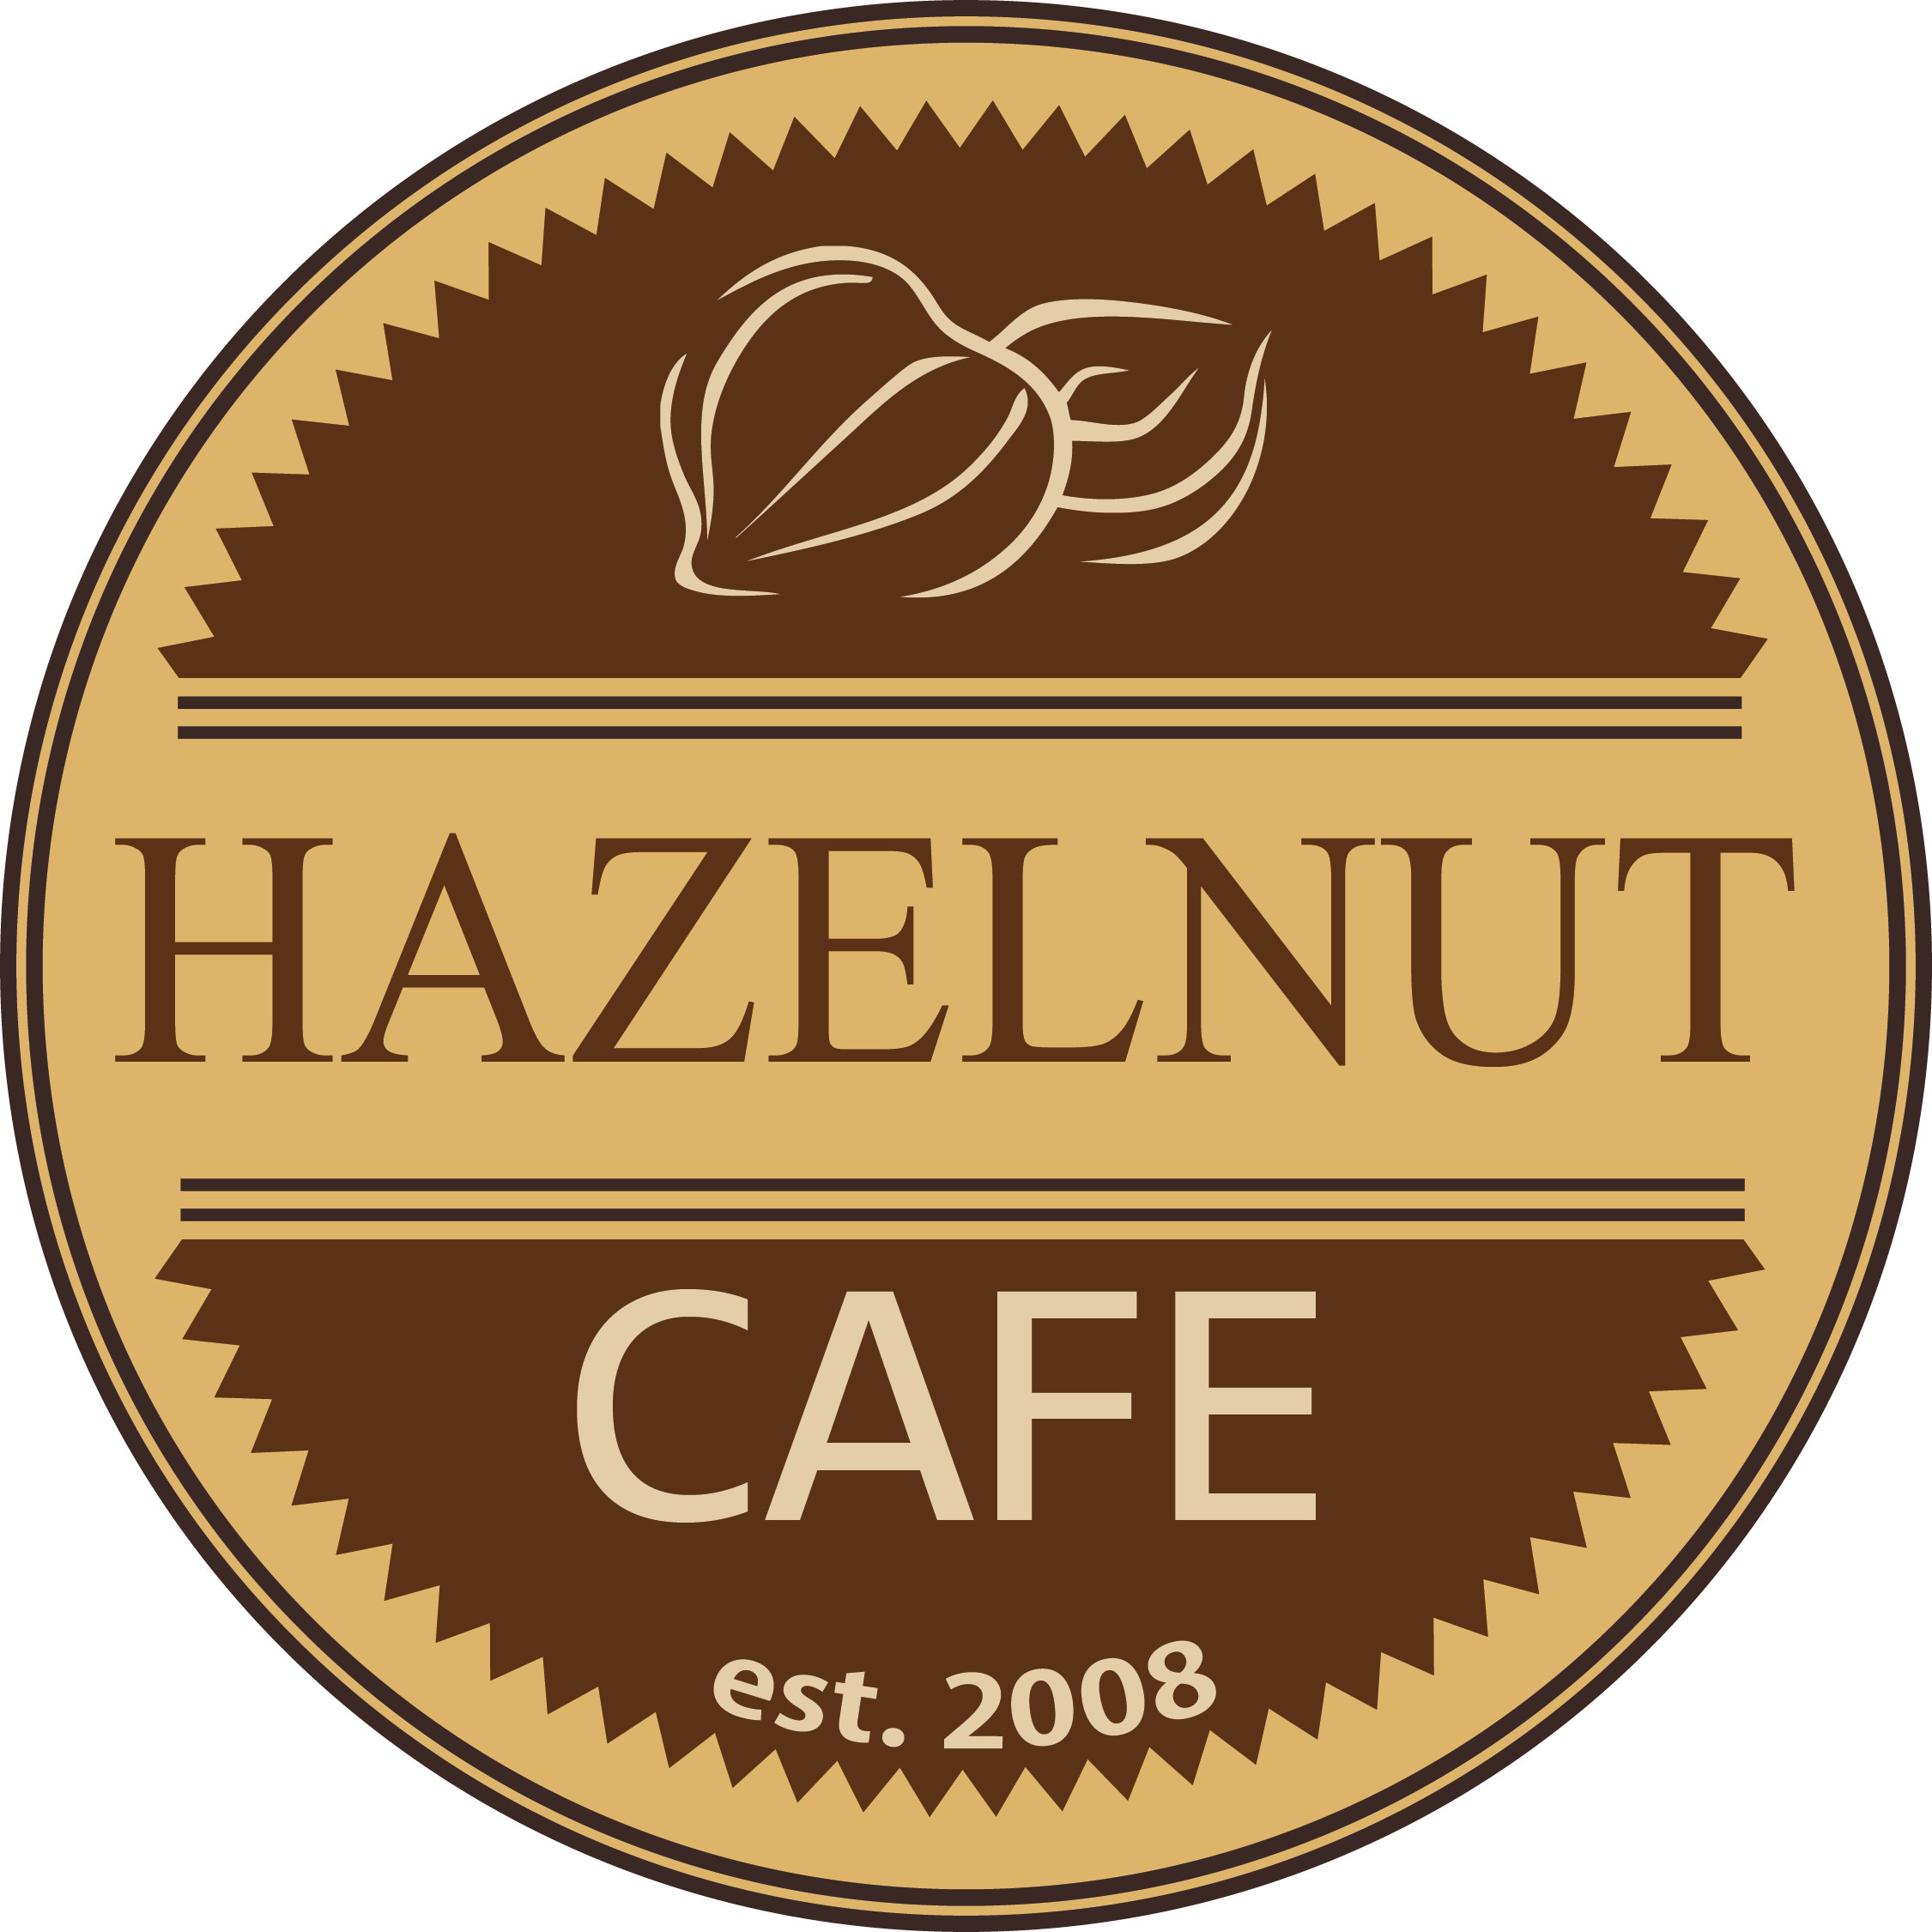 Hazelnut Cafe